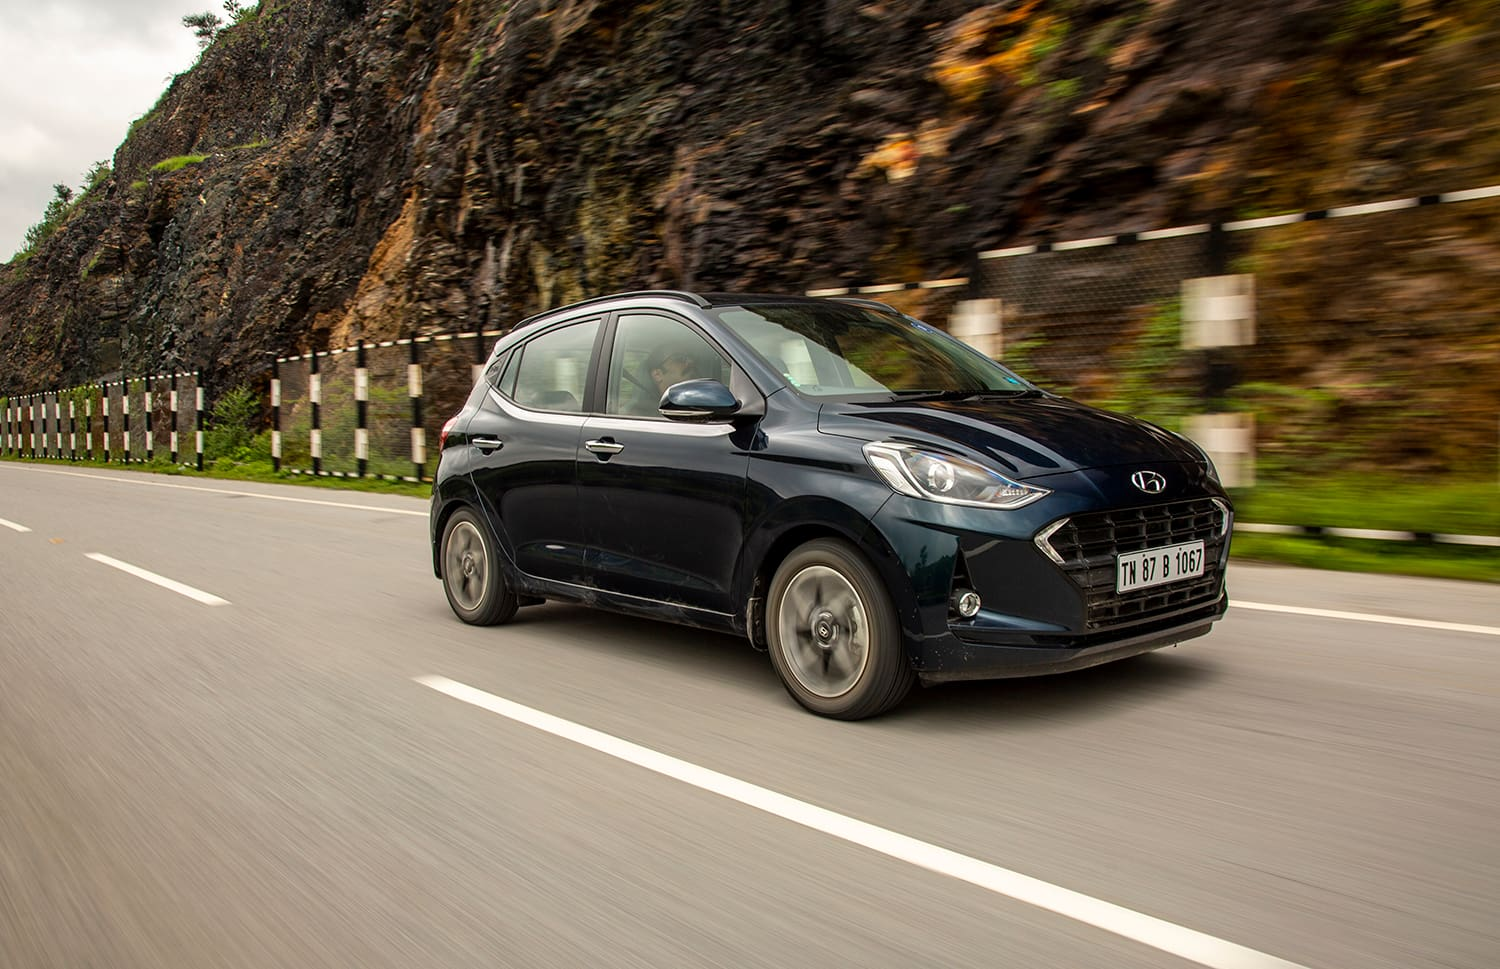 2019 Hyundai Grand i10 Nios Review: First Drive